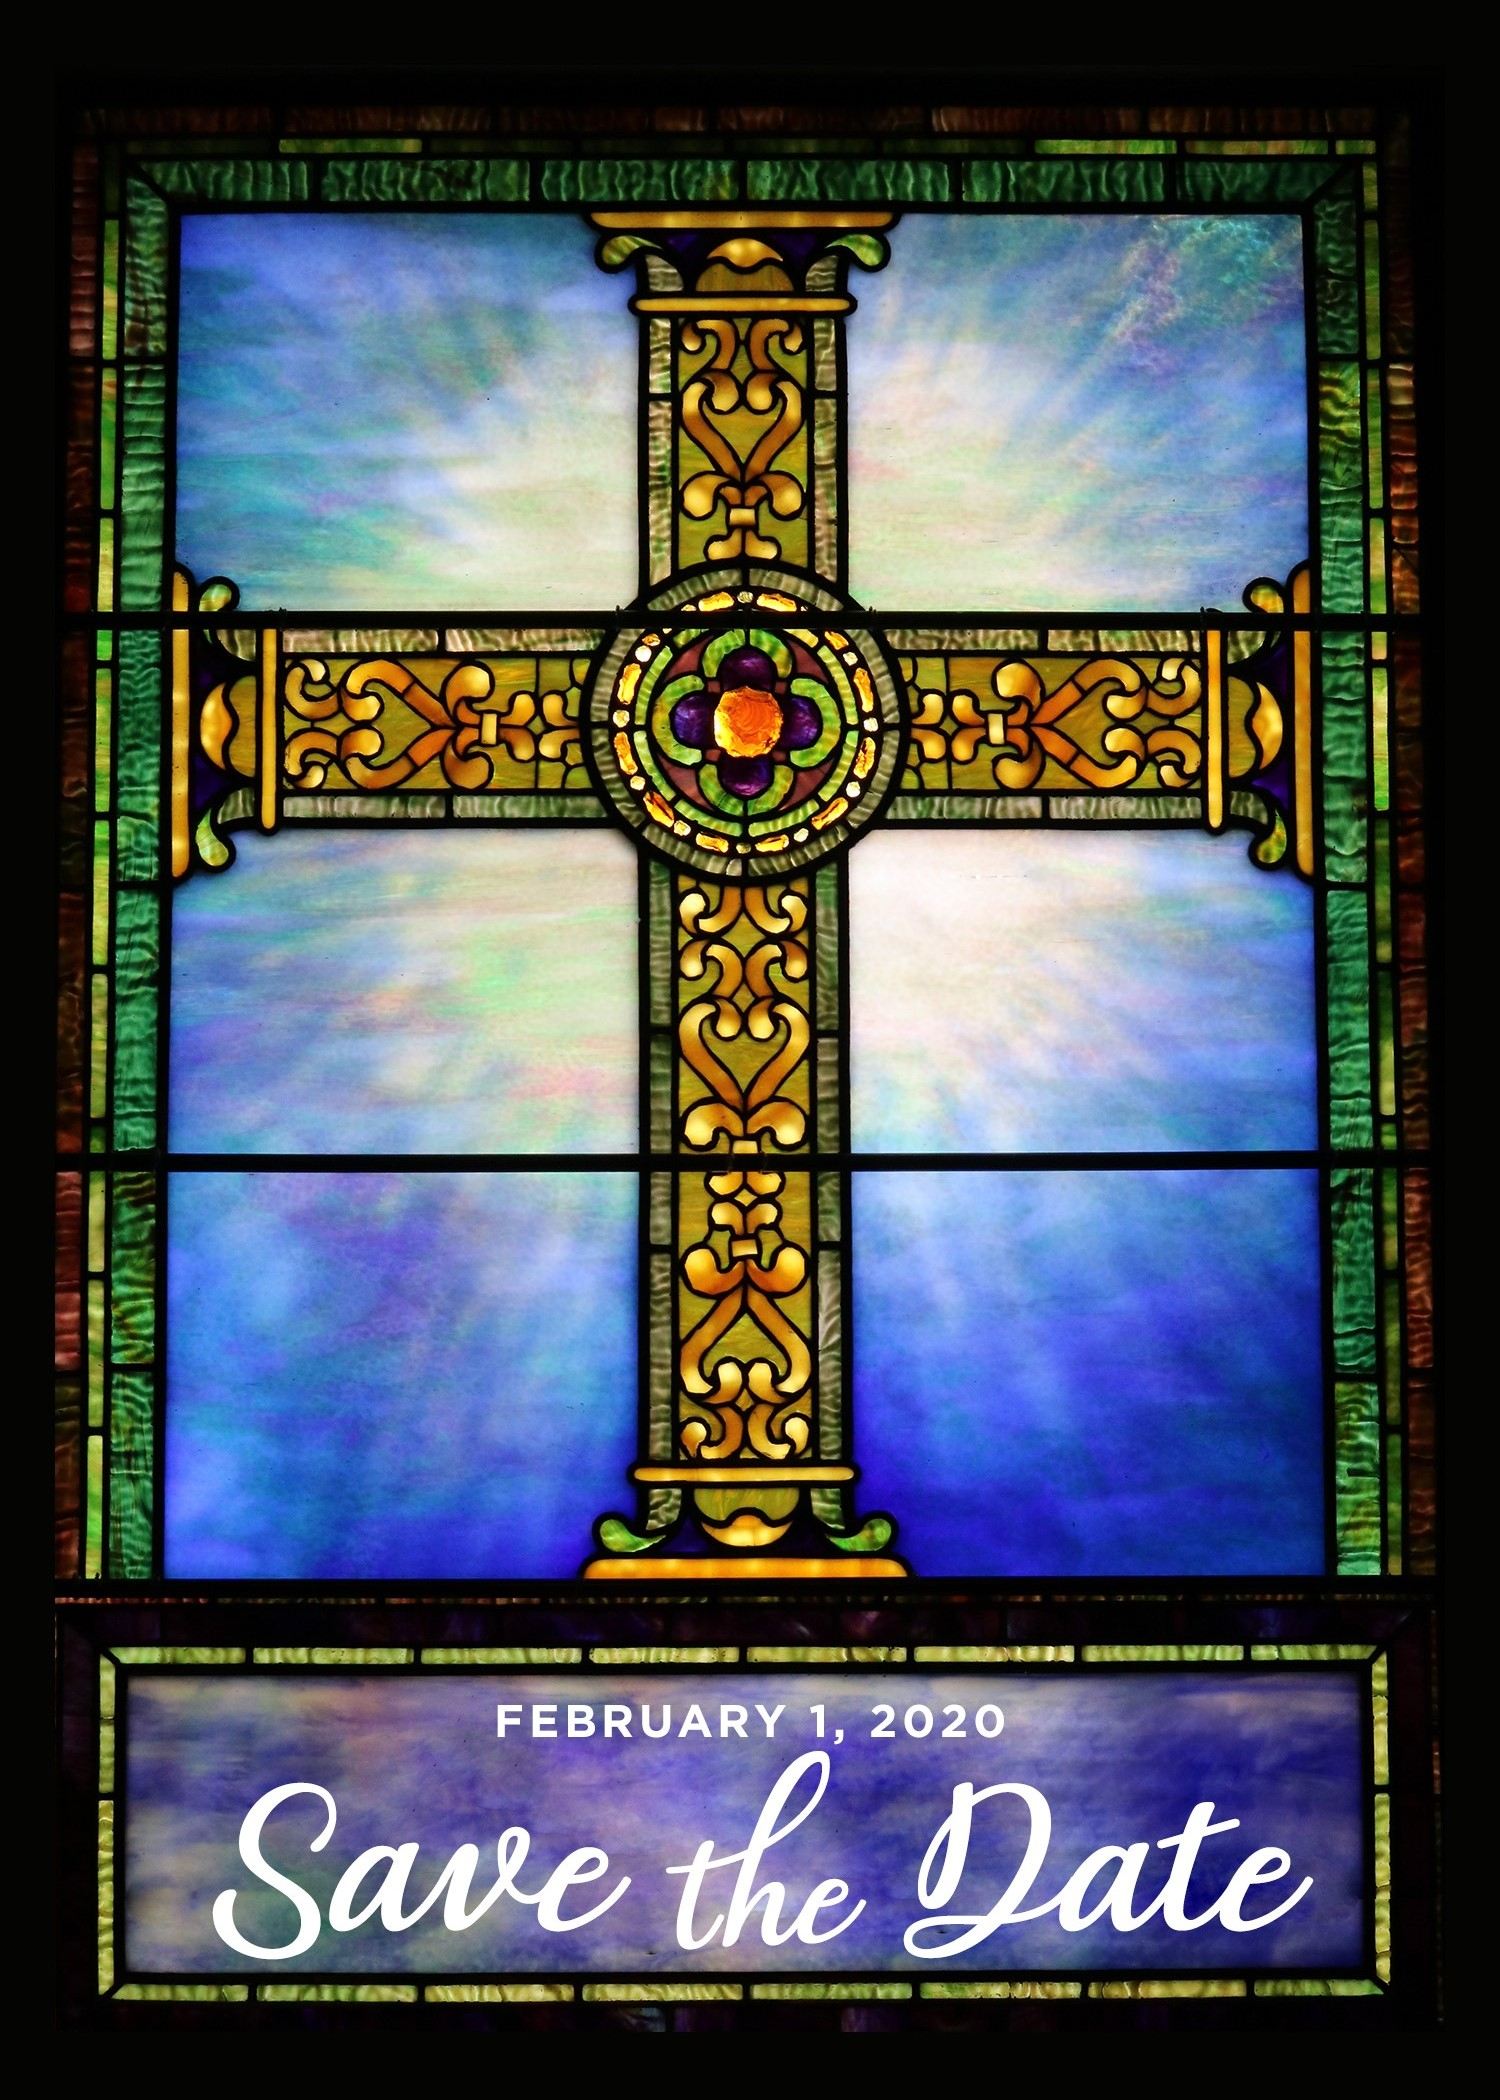 Tiffany Talk & Tour - Save the Date: Tiffany Talk & Tour - Mark your calendars for Saturday Feb. 1, 2020 from 9 a.m. - 3 p.m. for Atlanta's Tiffany Church Windows Lecture by Josh Probert PhD. Advance ticket sales only: $25 (includes lunch) .Buy Tickets Online HereAll Saints' Episcopal Church:9 a.m. - 9:30 a.m. Check in9:30 - 11 a.m. Talk at All Saints'North Avenue Presbyterian Church11:30 a.m. - 12:30 p.m. Talk at North Ave. 12:30 - 1:15 p.m. LunchFirst Presbyterian Church of Atlanta2 - 3 p.m. Talk at First Pres.